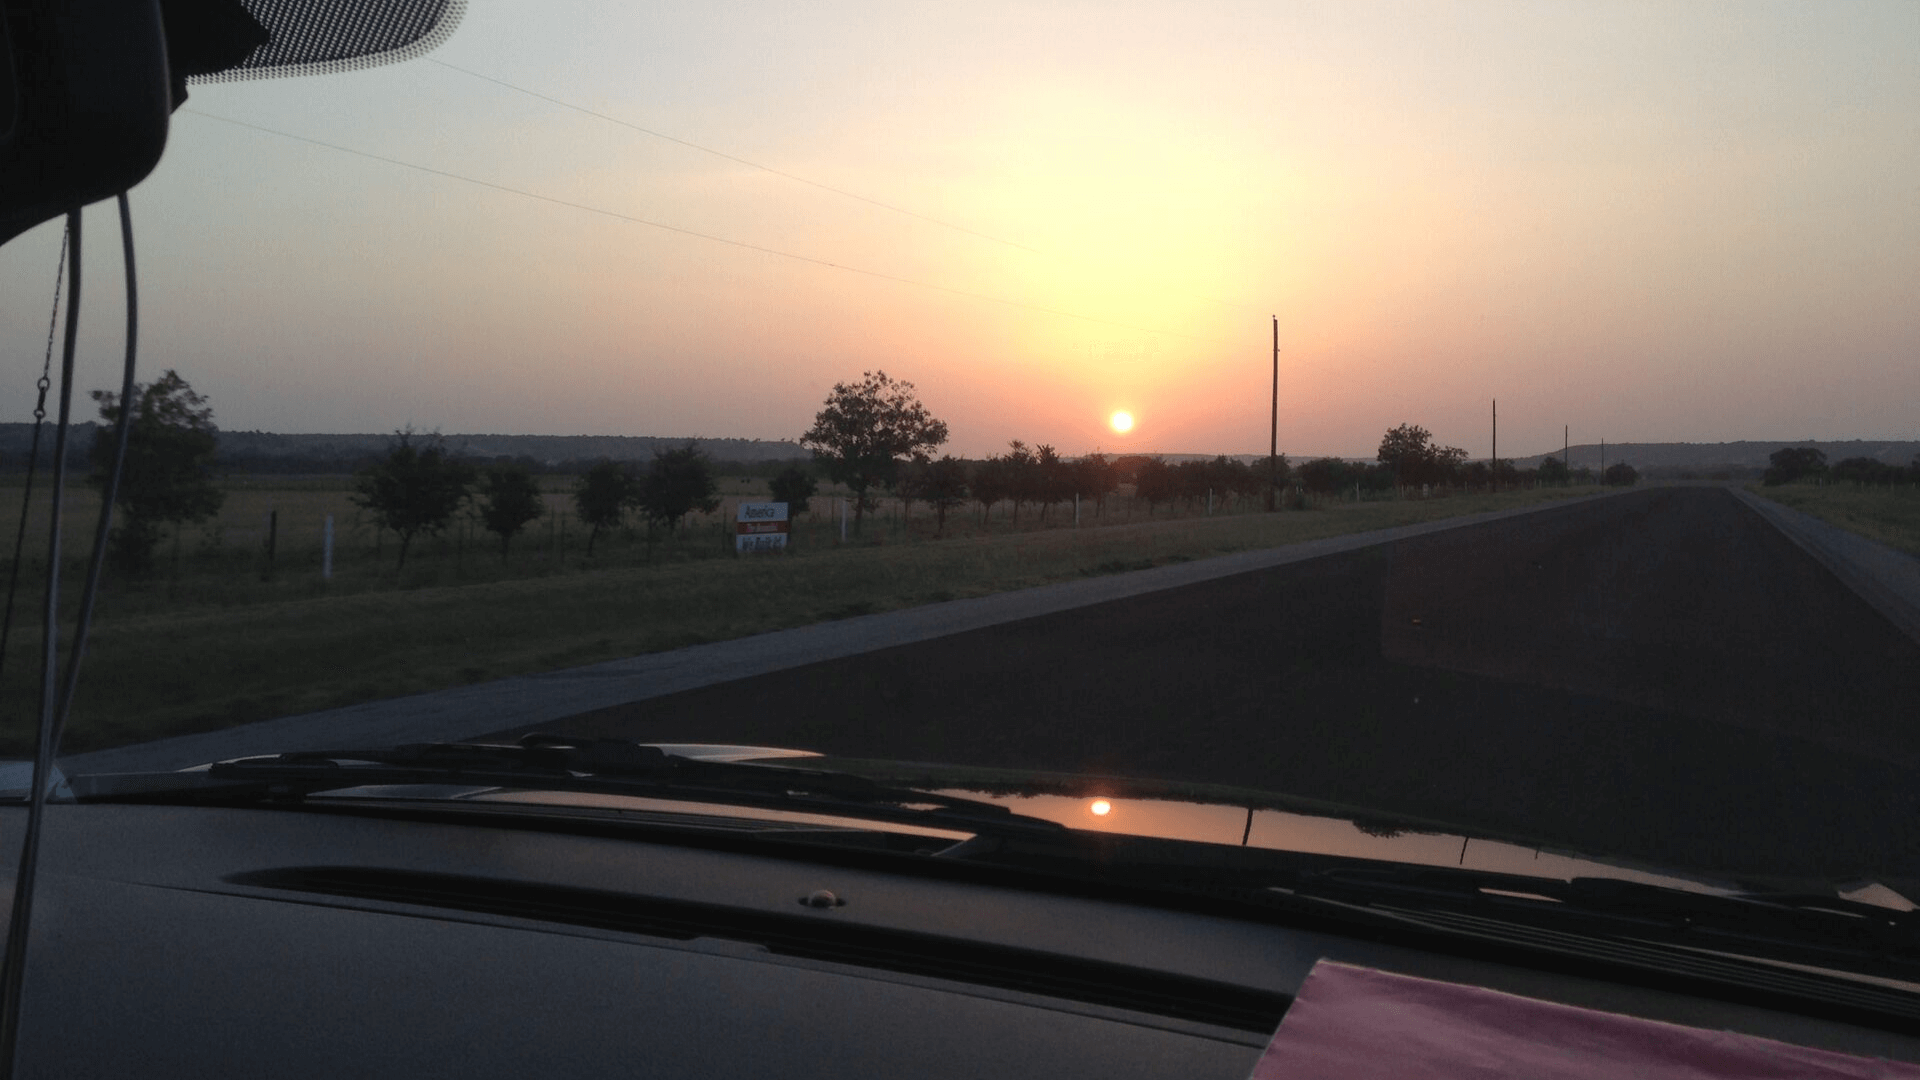 Sunset drive somewhere in Texas